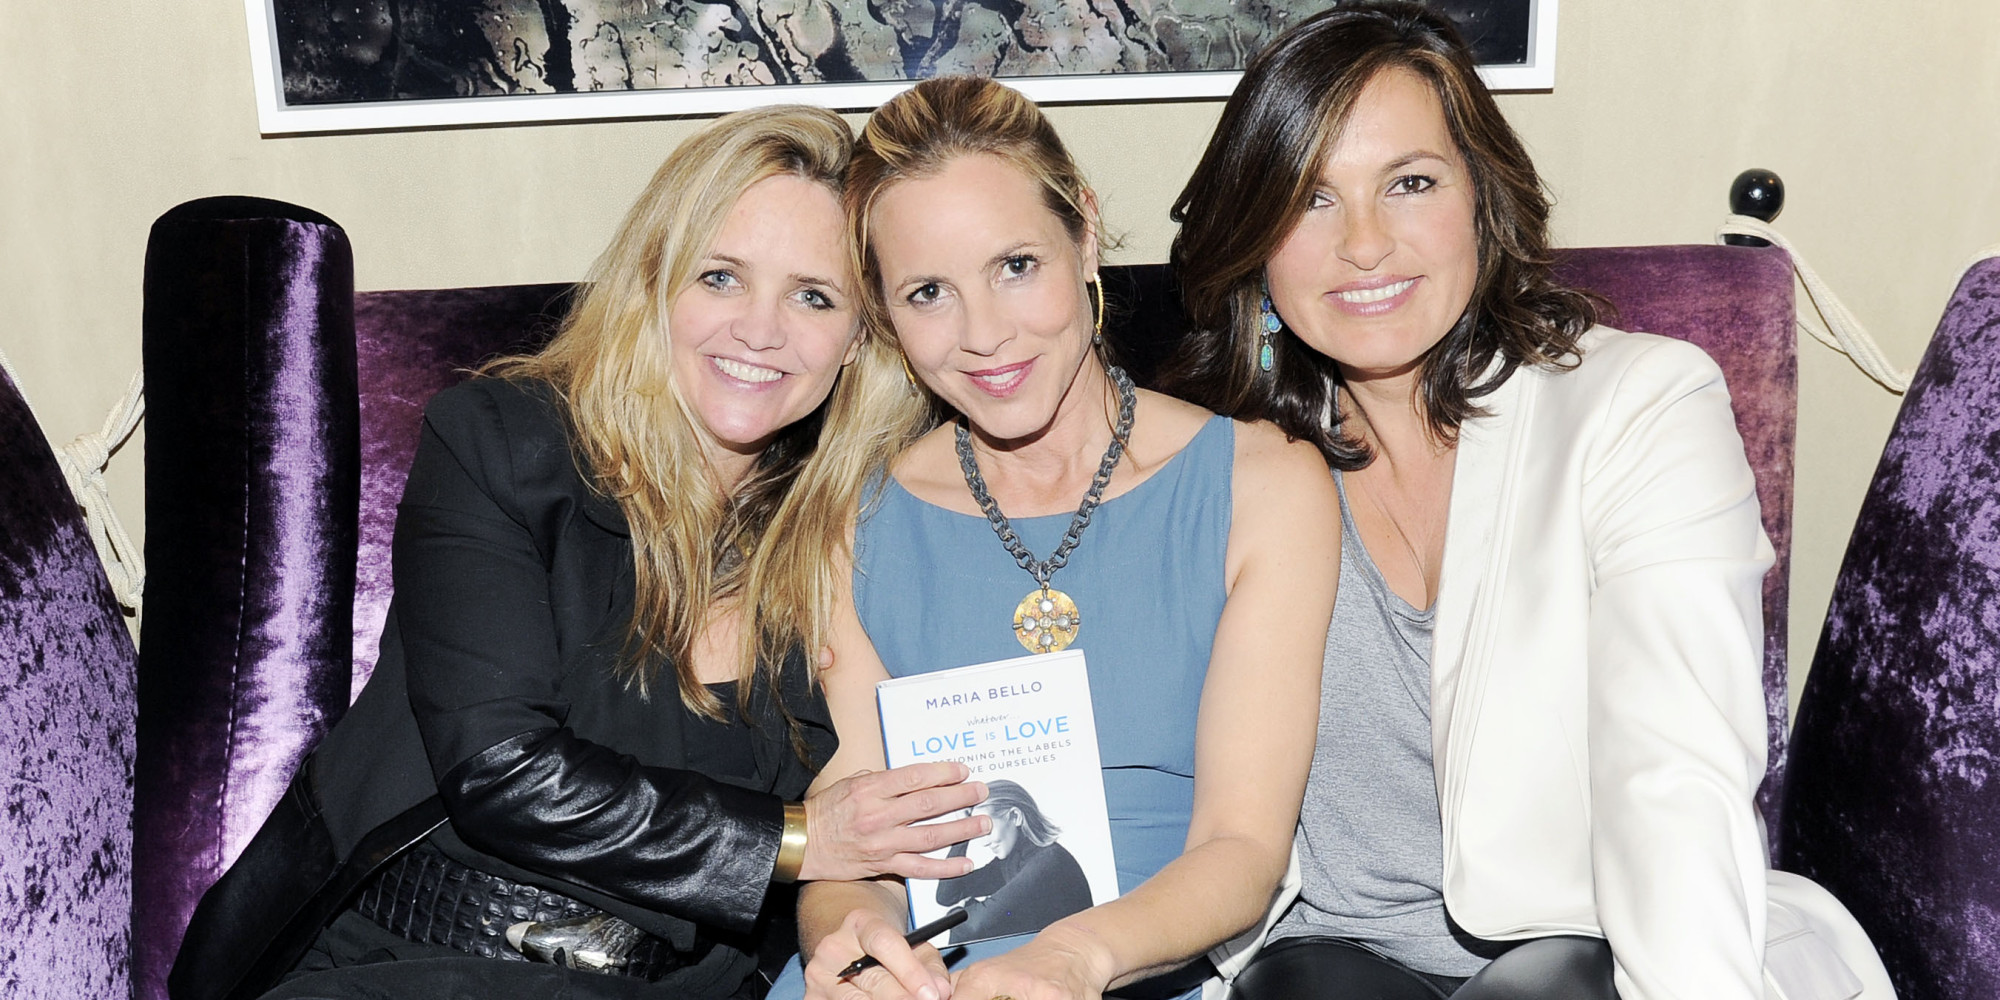 Maria Bello and partner